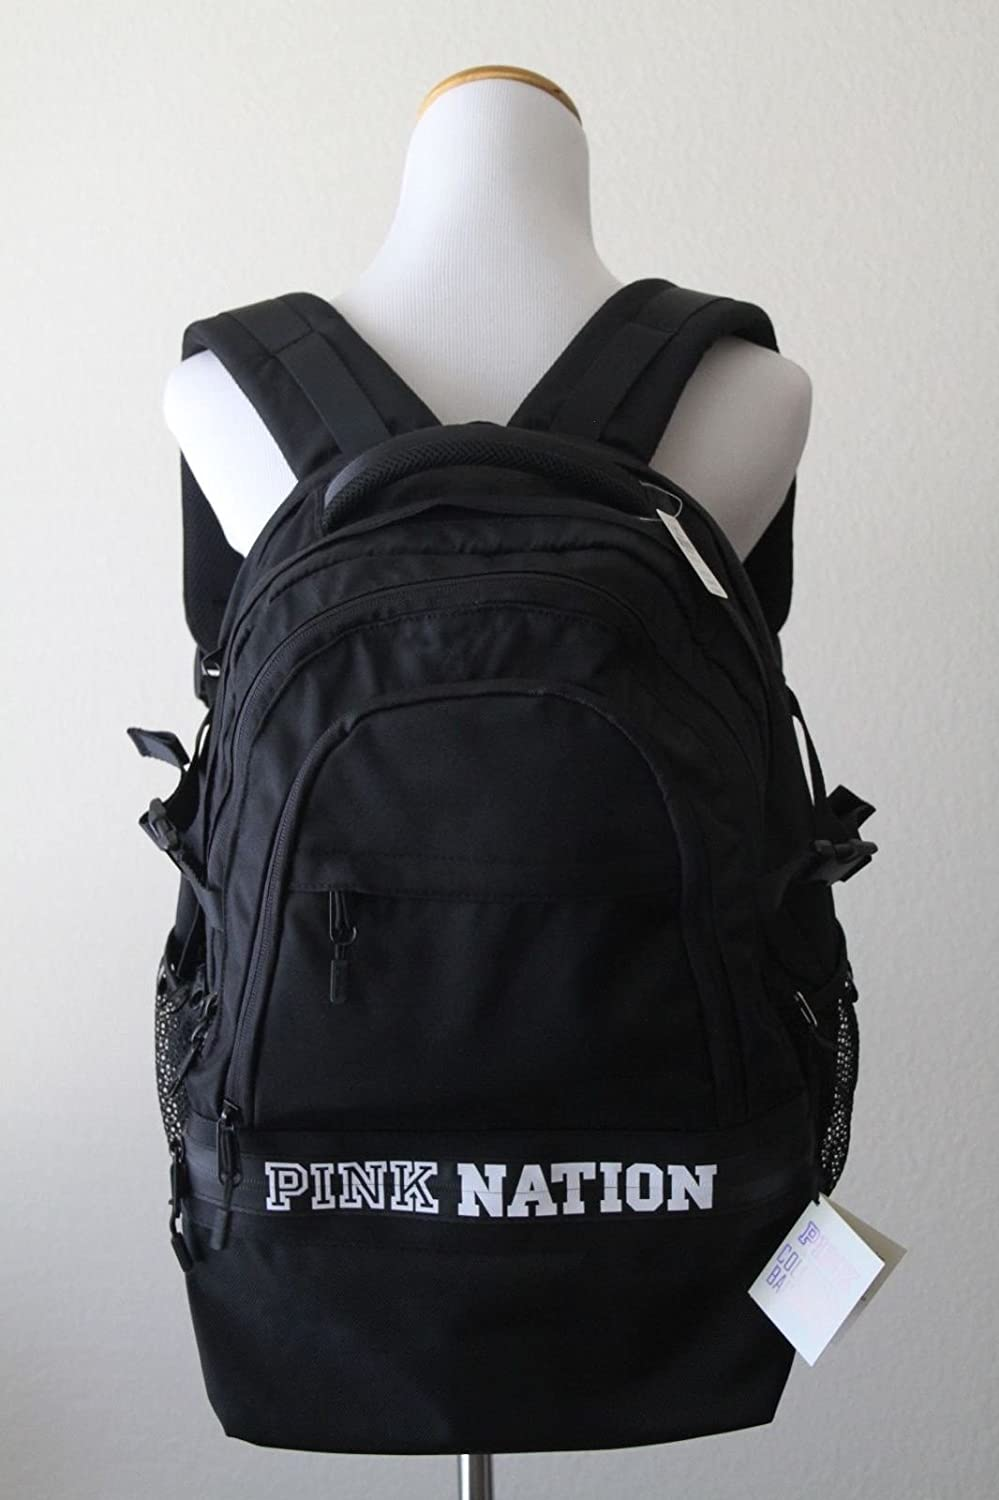 b7f3d1479b Amazon.com  VICTORIA SECRET PINK NATION BACK PACK BACKPACK BLACK   Everything Else